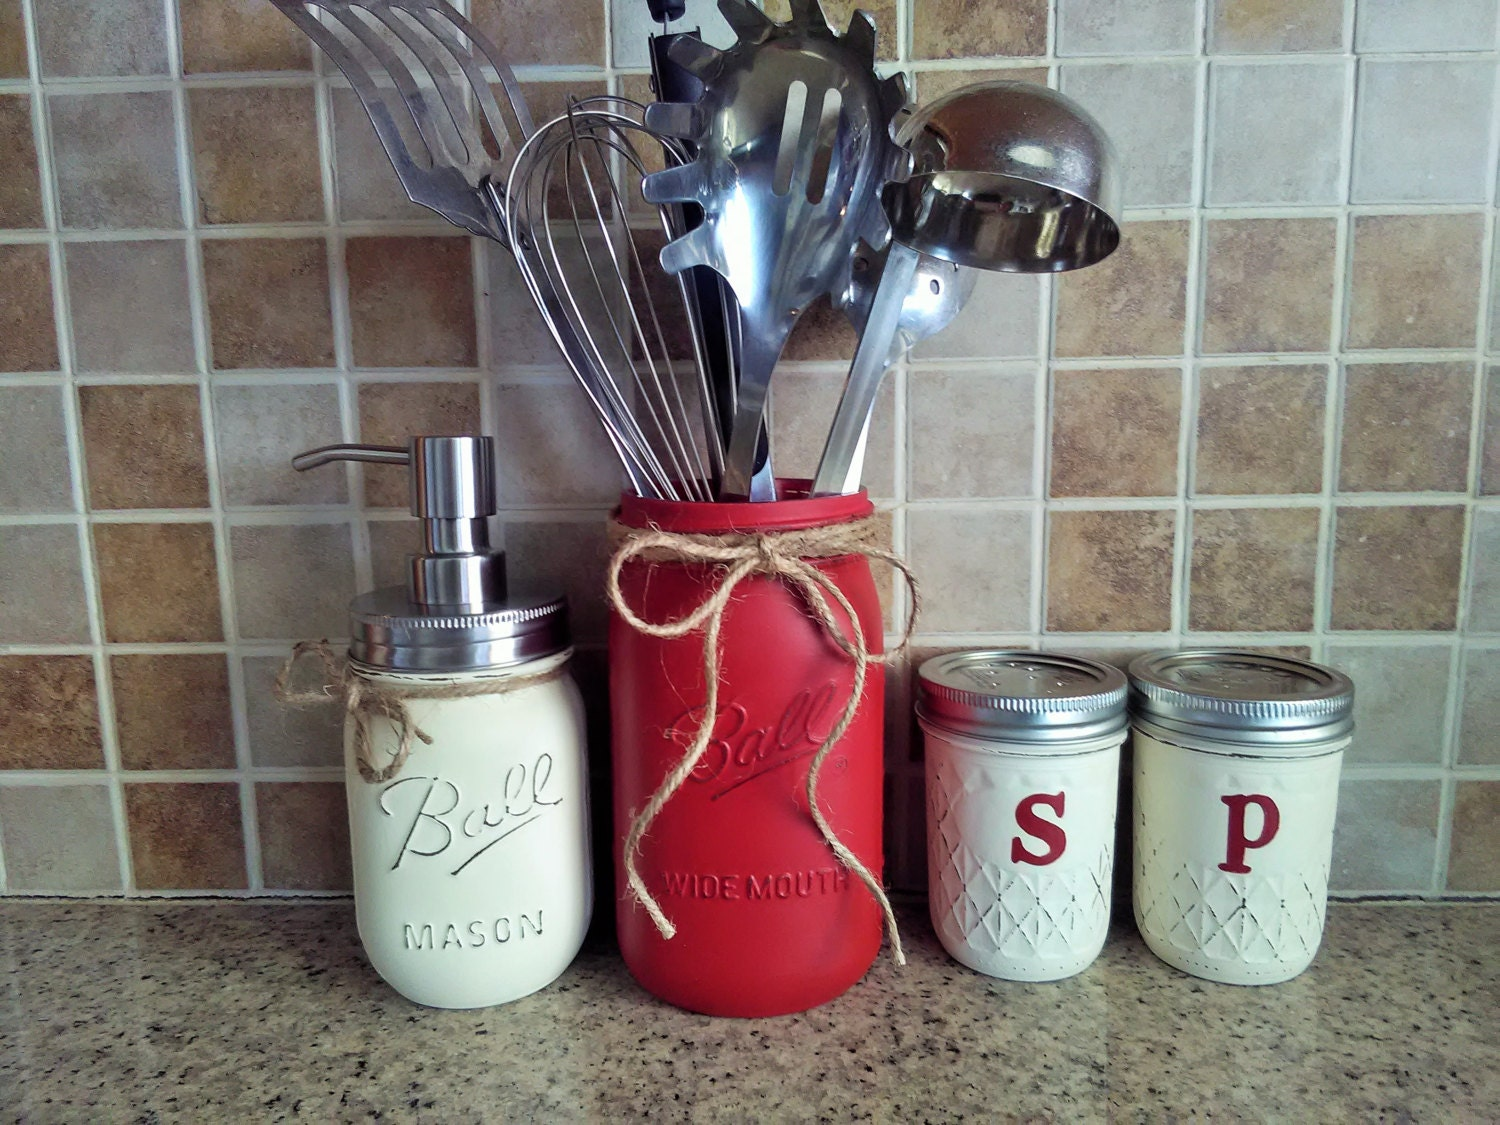 Mason jar kitchen decor redmason jar kitchen set kitchen for Kitchen jar decoration